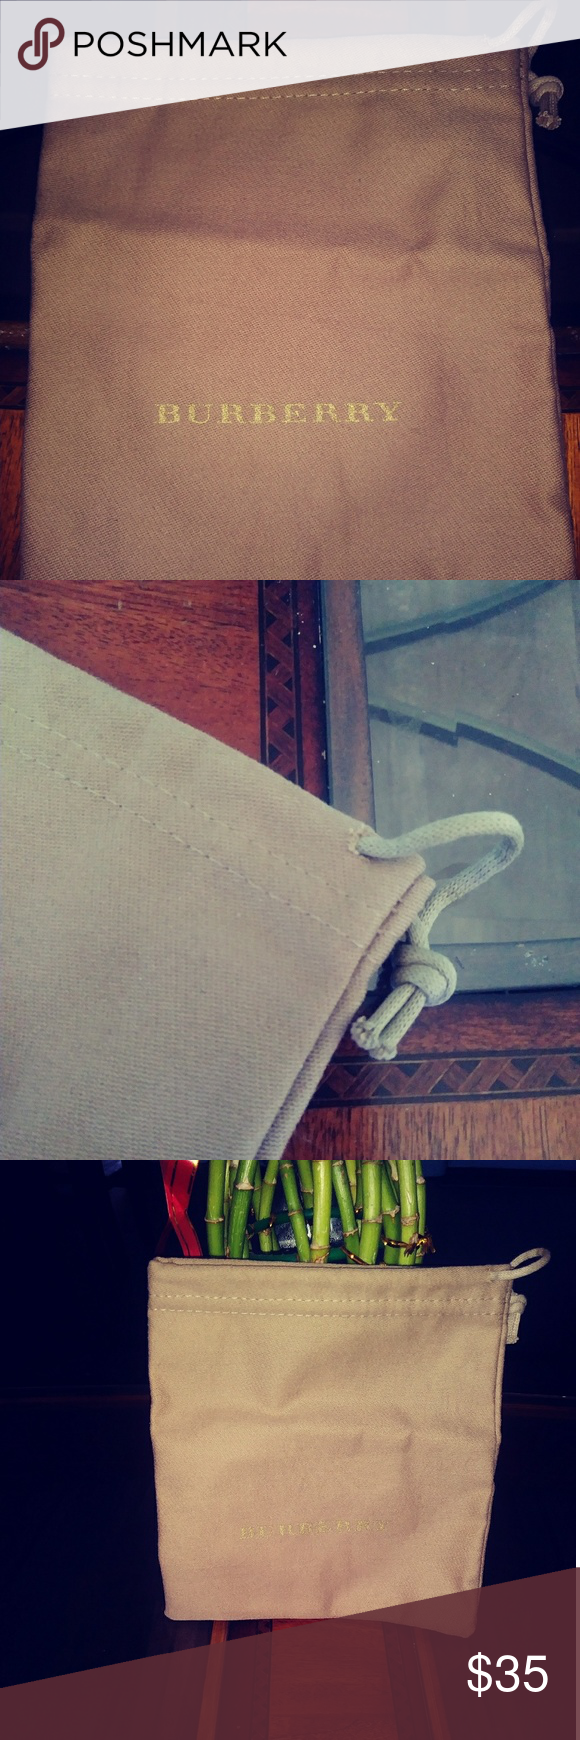 Brand new!!! Burberry pouch.